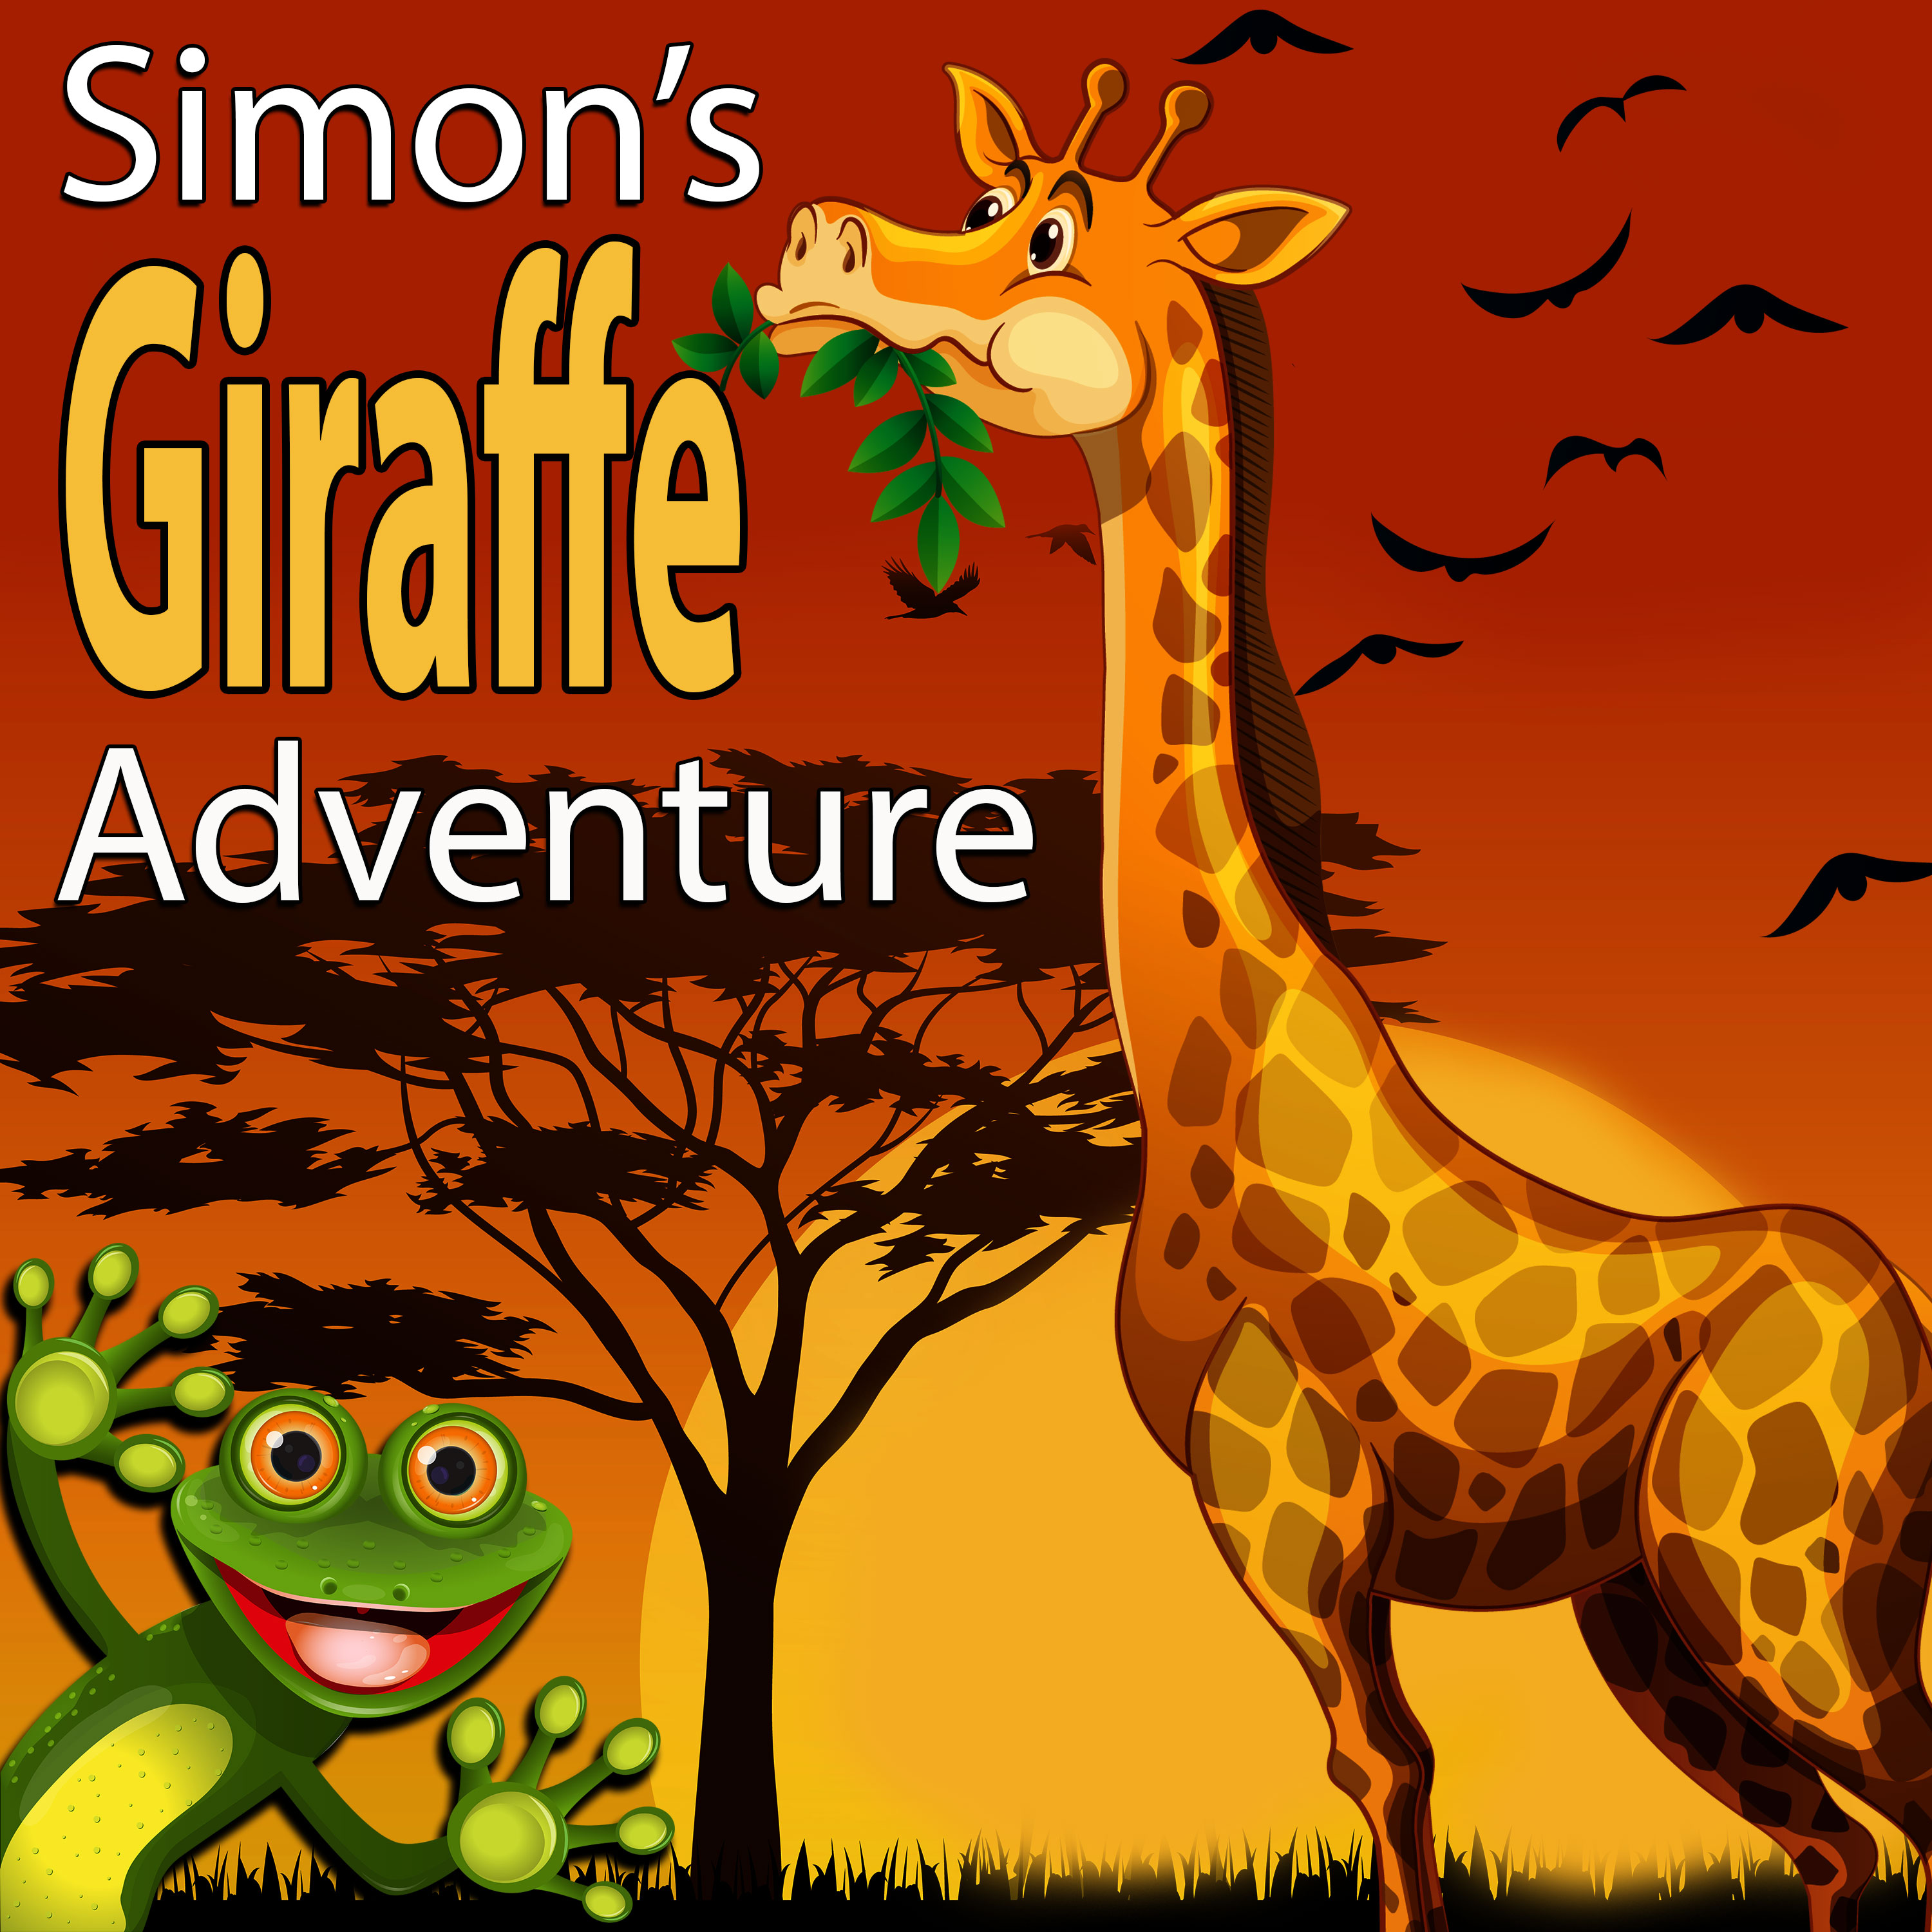 Simon's Giraffe Adventure